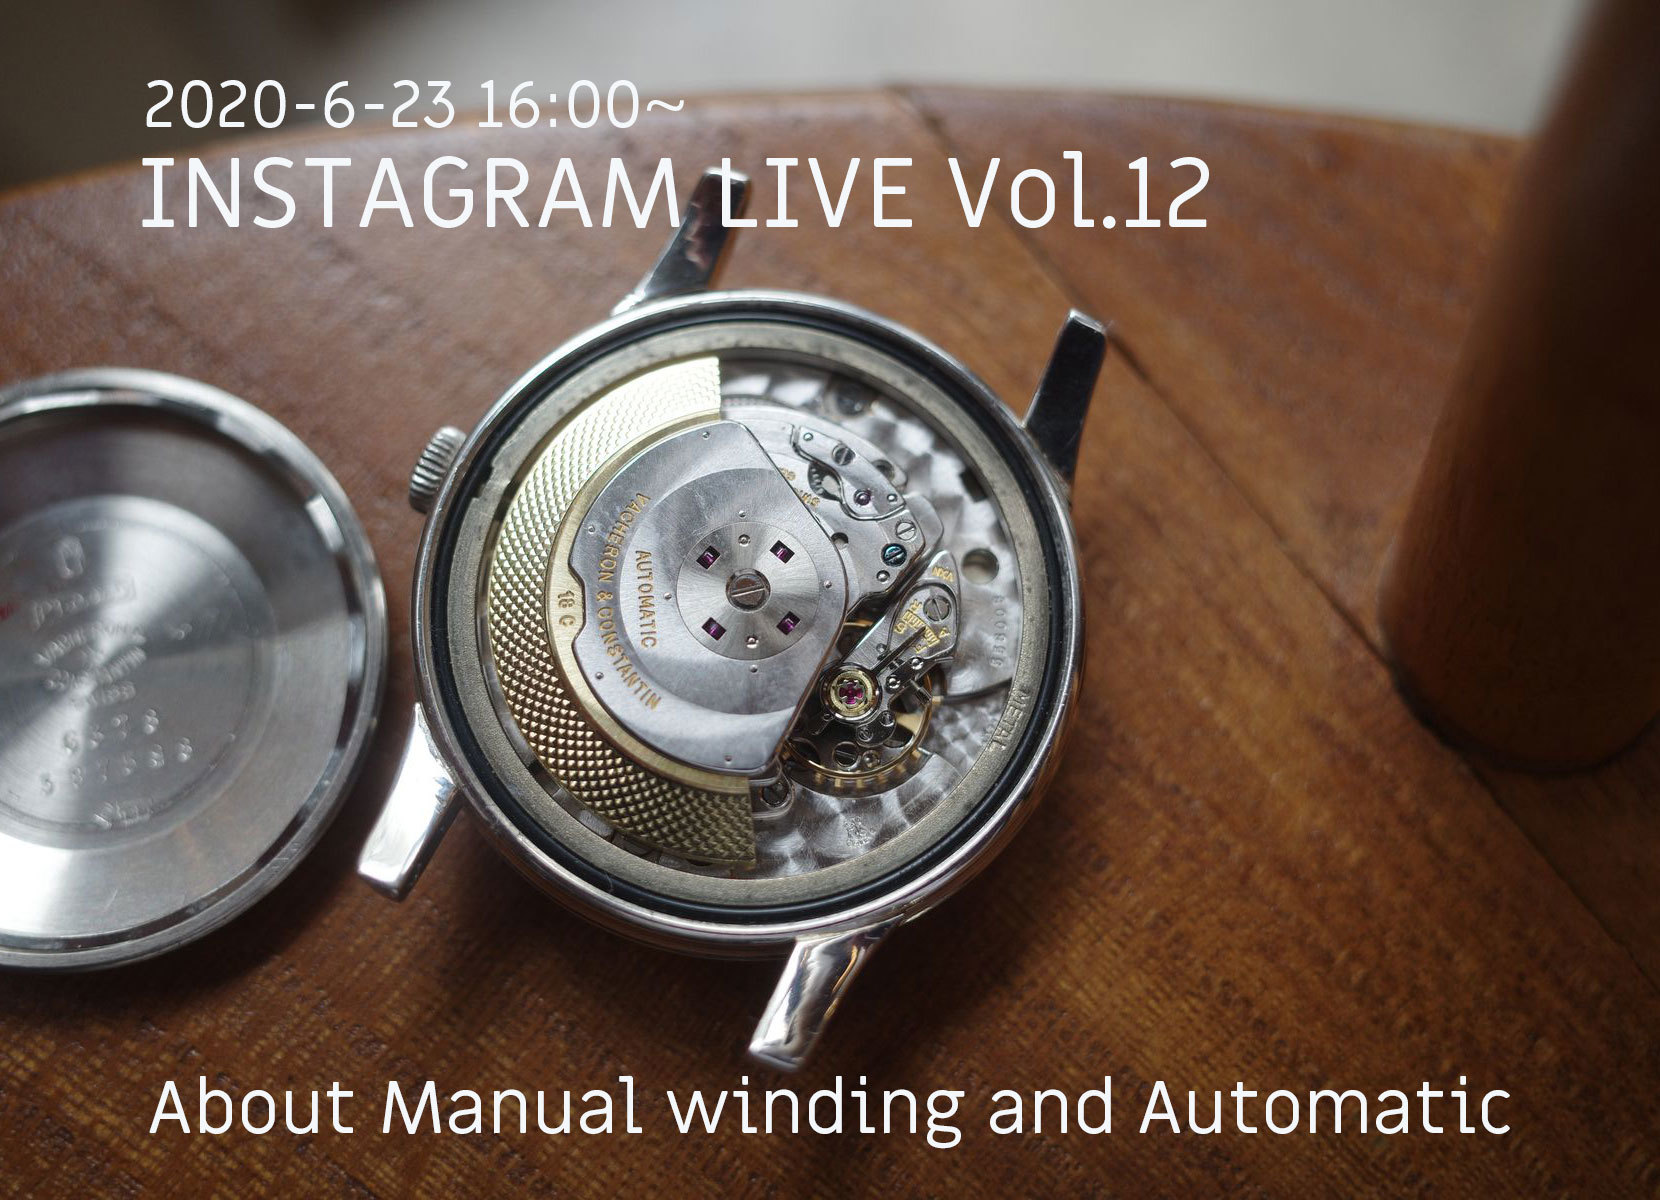 INSTAGRAM LIVE Vol.11 2020/6/26 16:00~ / About Manual winding and Automatic